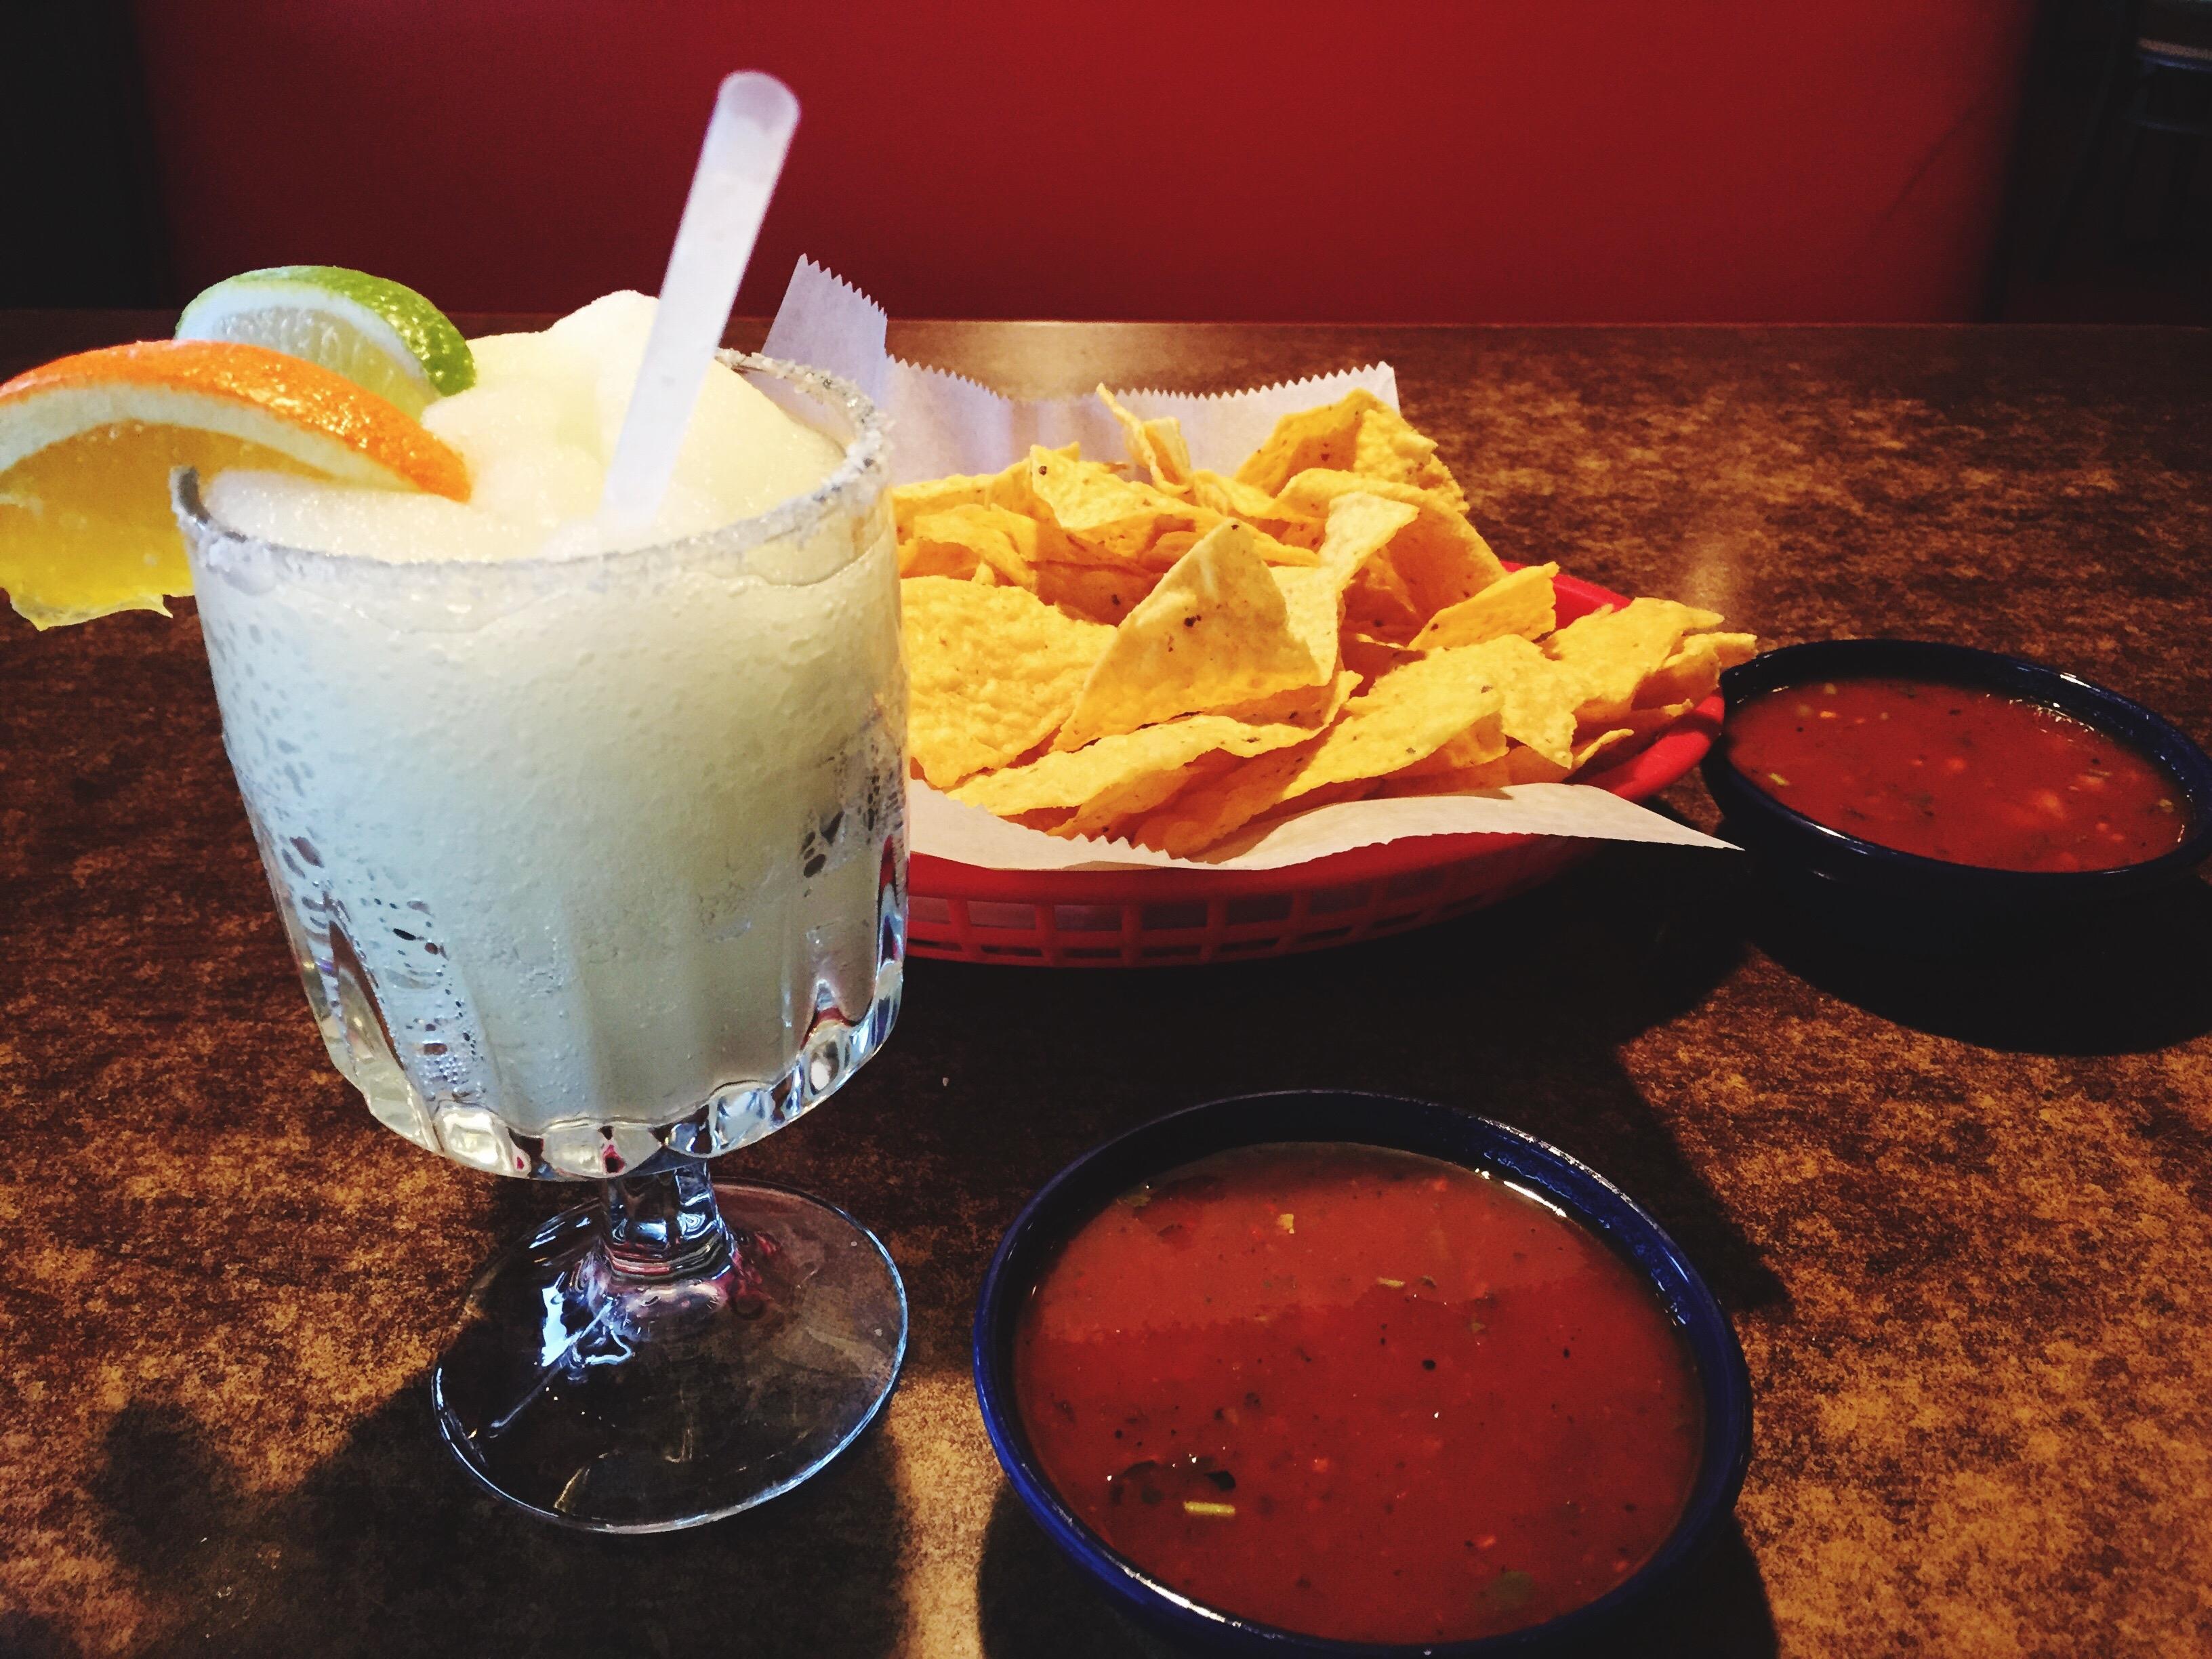 Close-Up Of Margarita And Food On Table